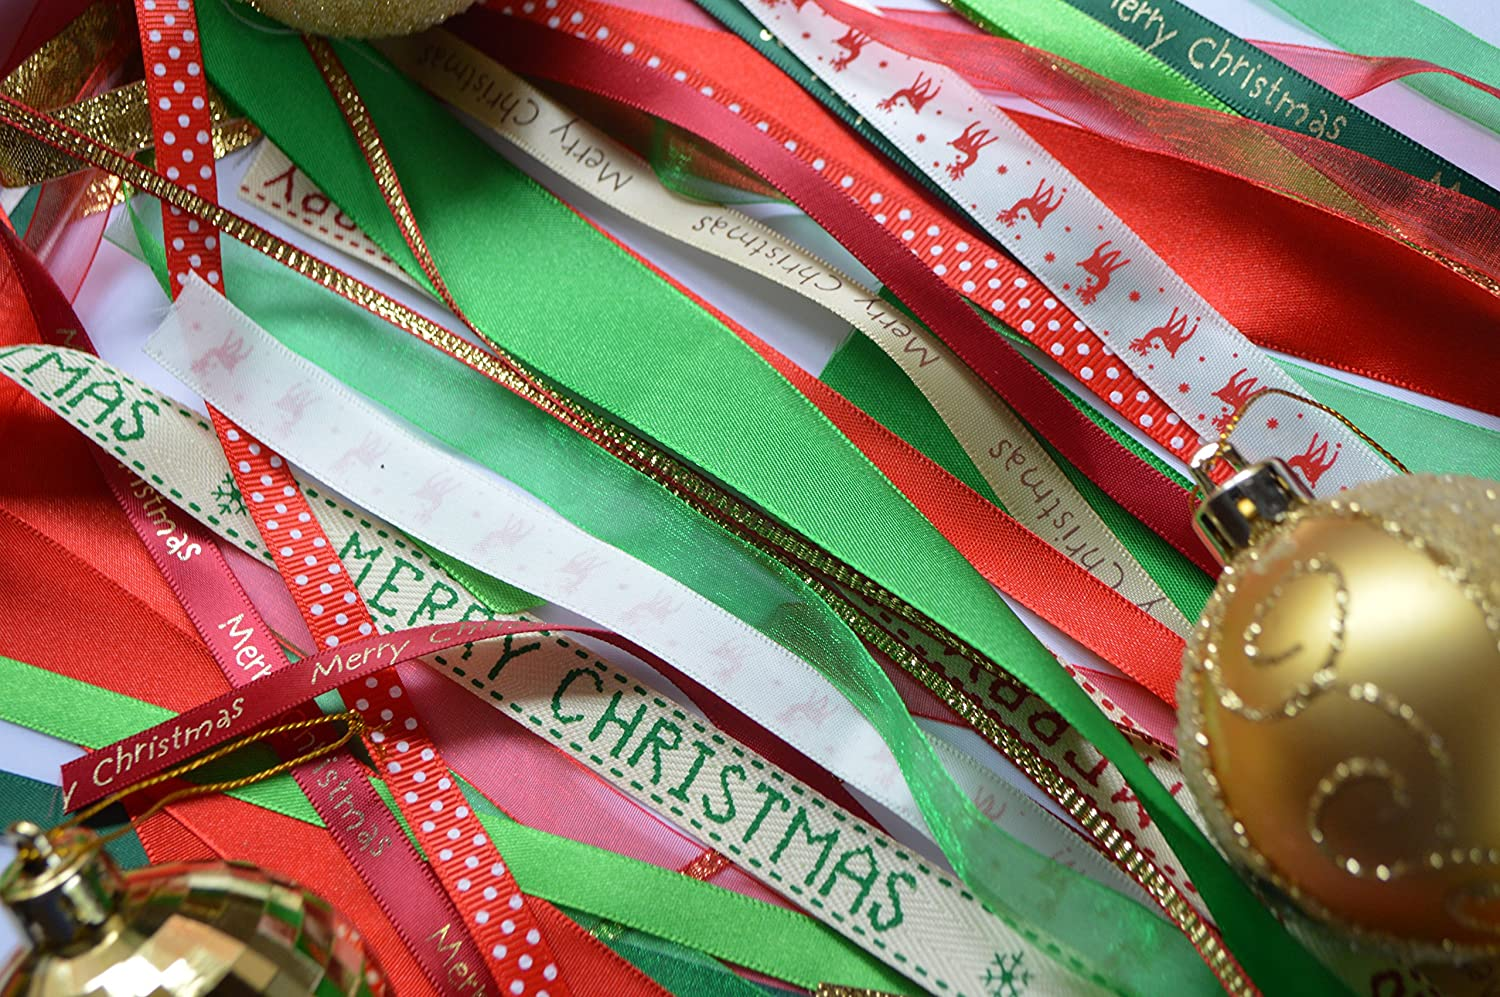 Christmas Ribbon.Christmas Ribbon Bundle 15 X 1 Meter Lengths Festive Themed Ribbons Exclusive From The Cut Sew Company